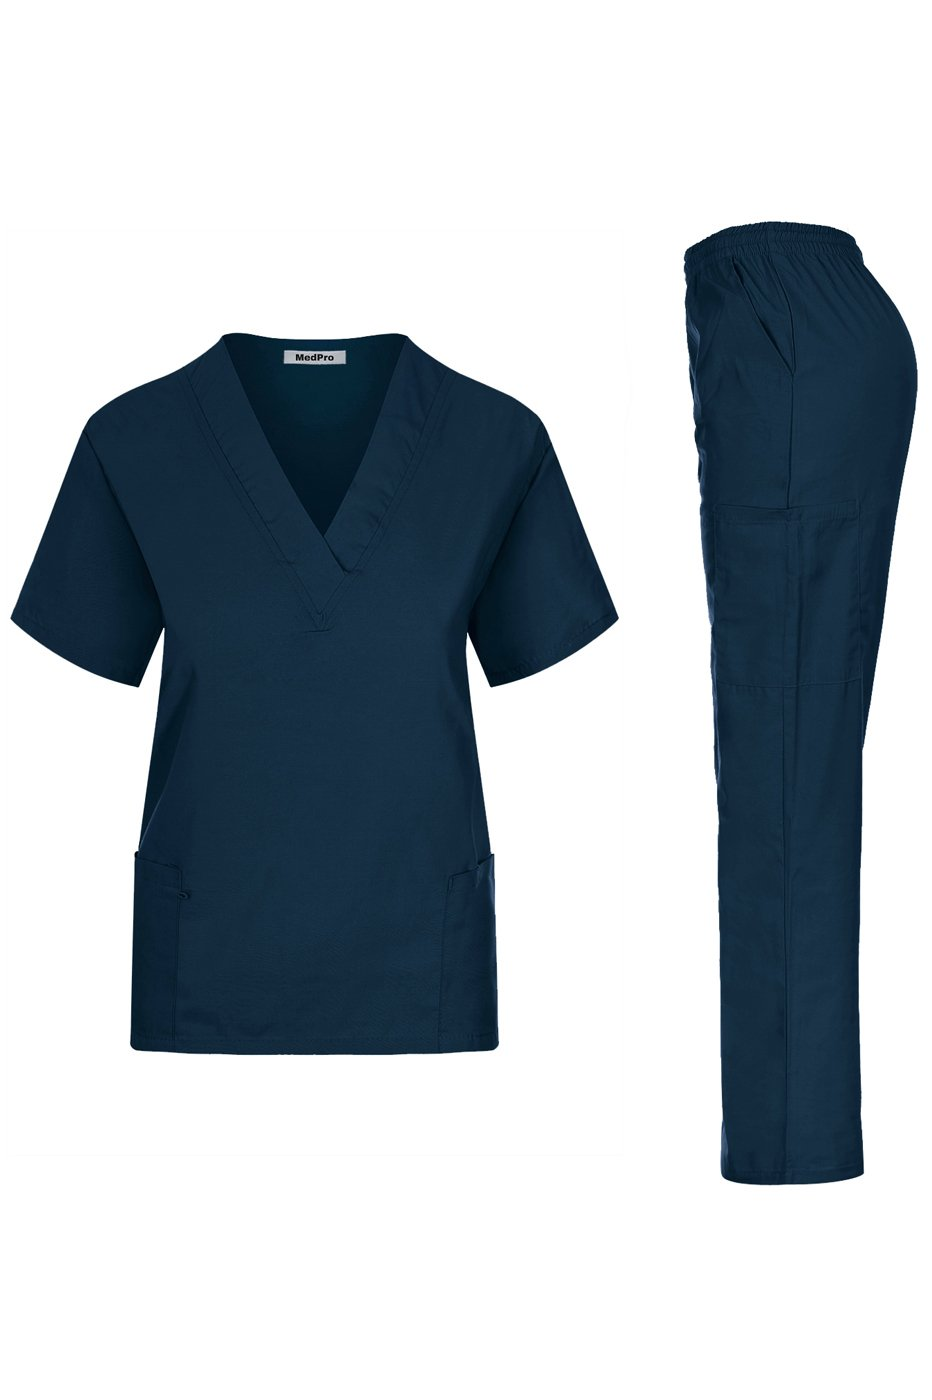 MedPro Women's Unisex Solid Medical Scrub Set V-Neck Top and Cargo Pants Dark Green 2XL (GT-766)